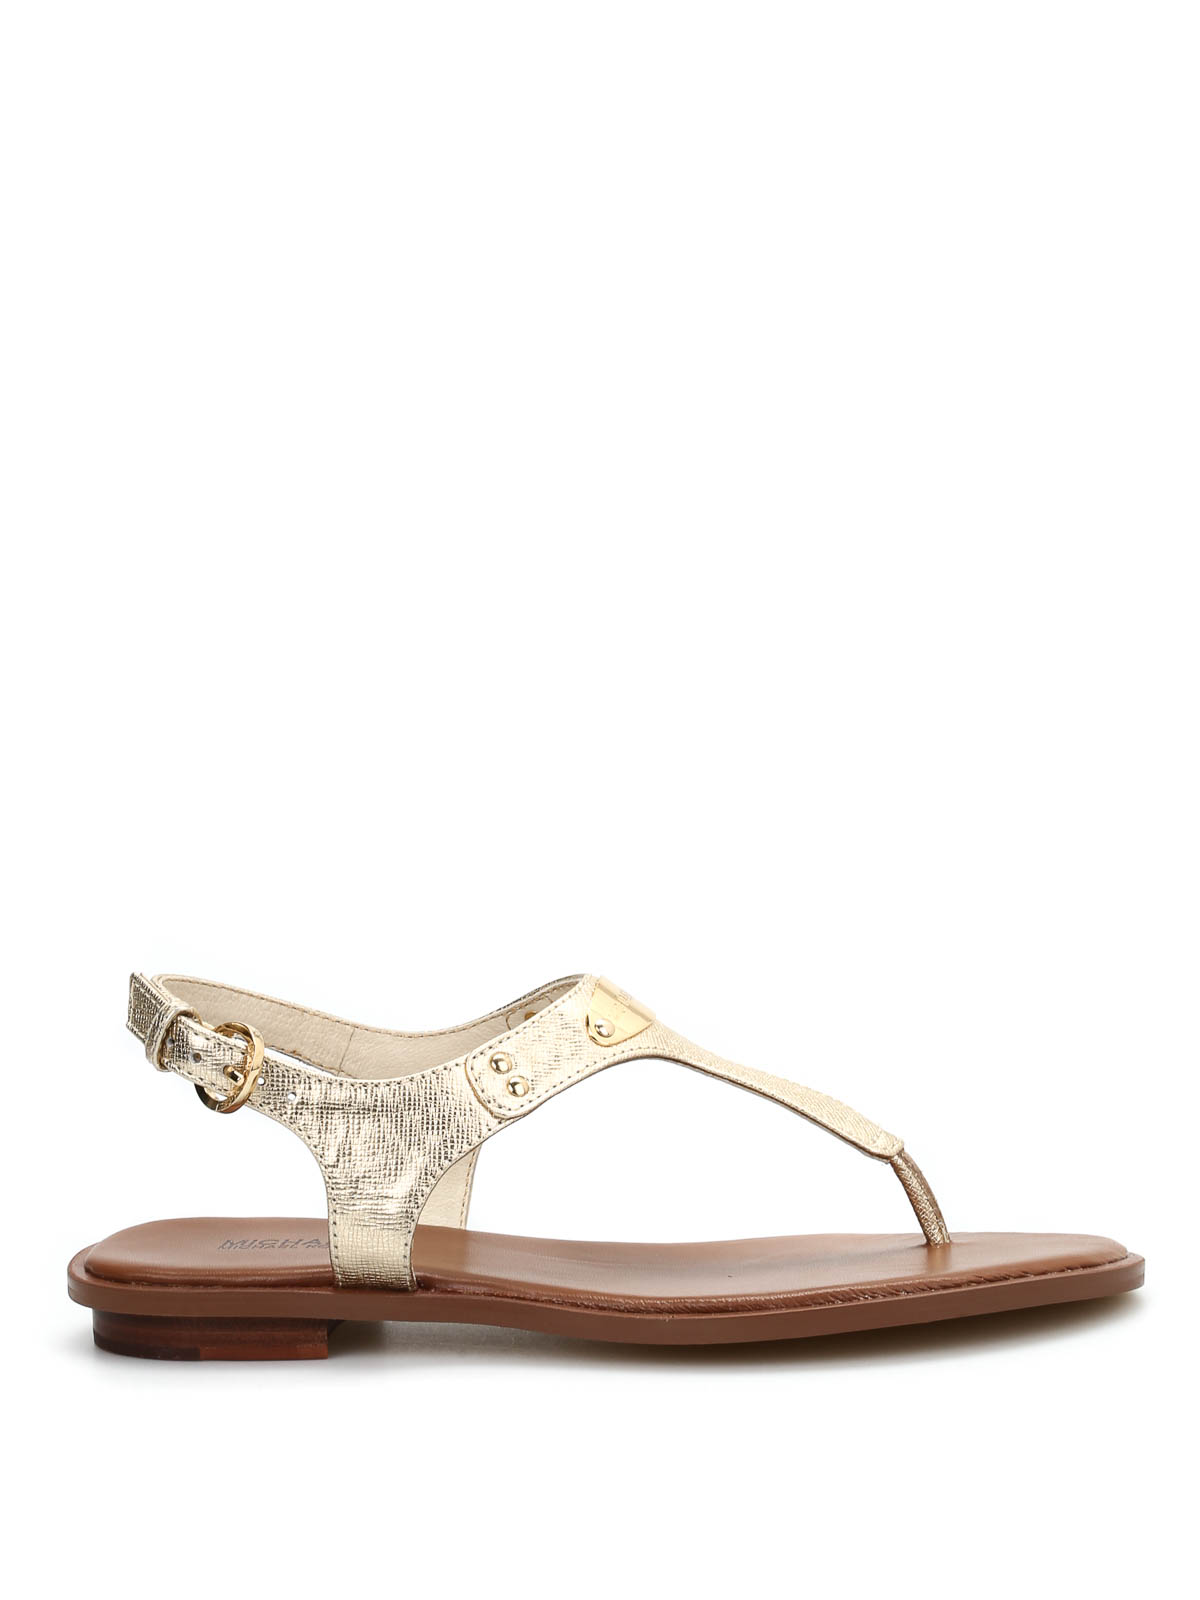 Michael Kors Plate Thong Sandals In Gold